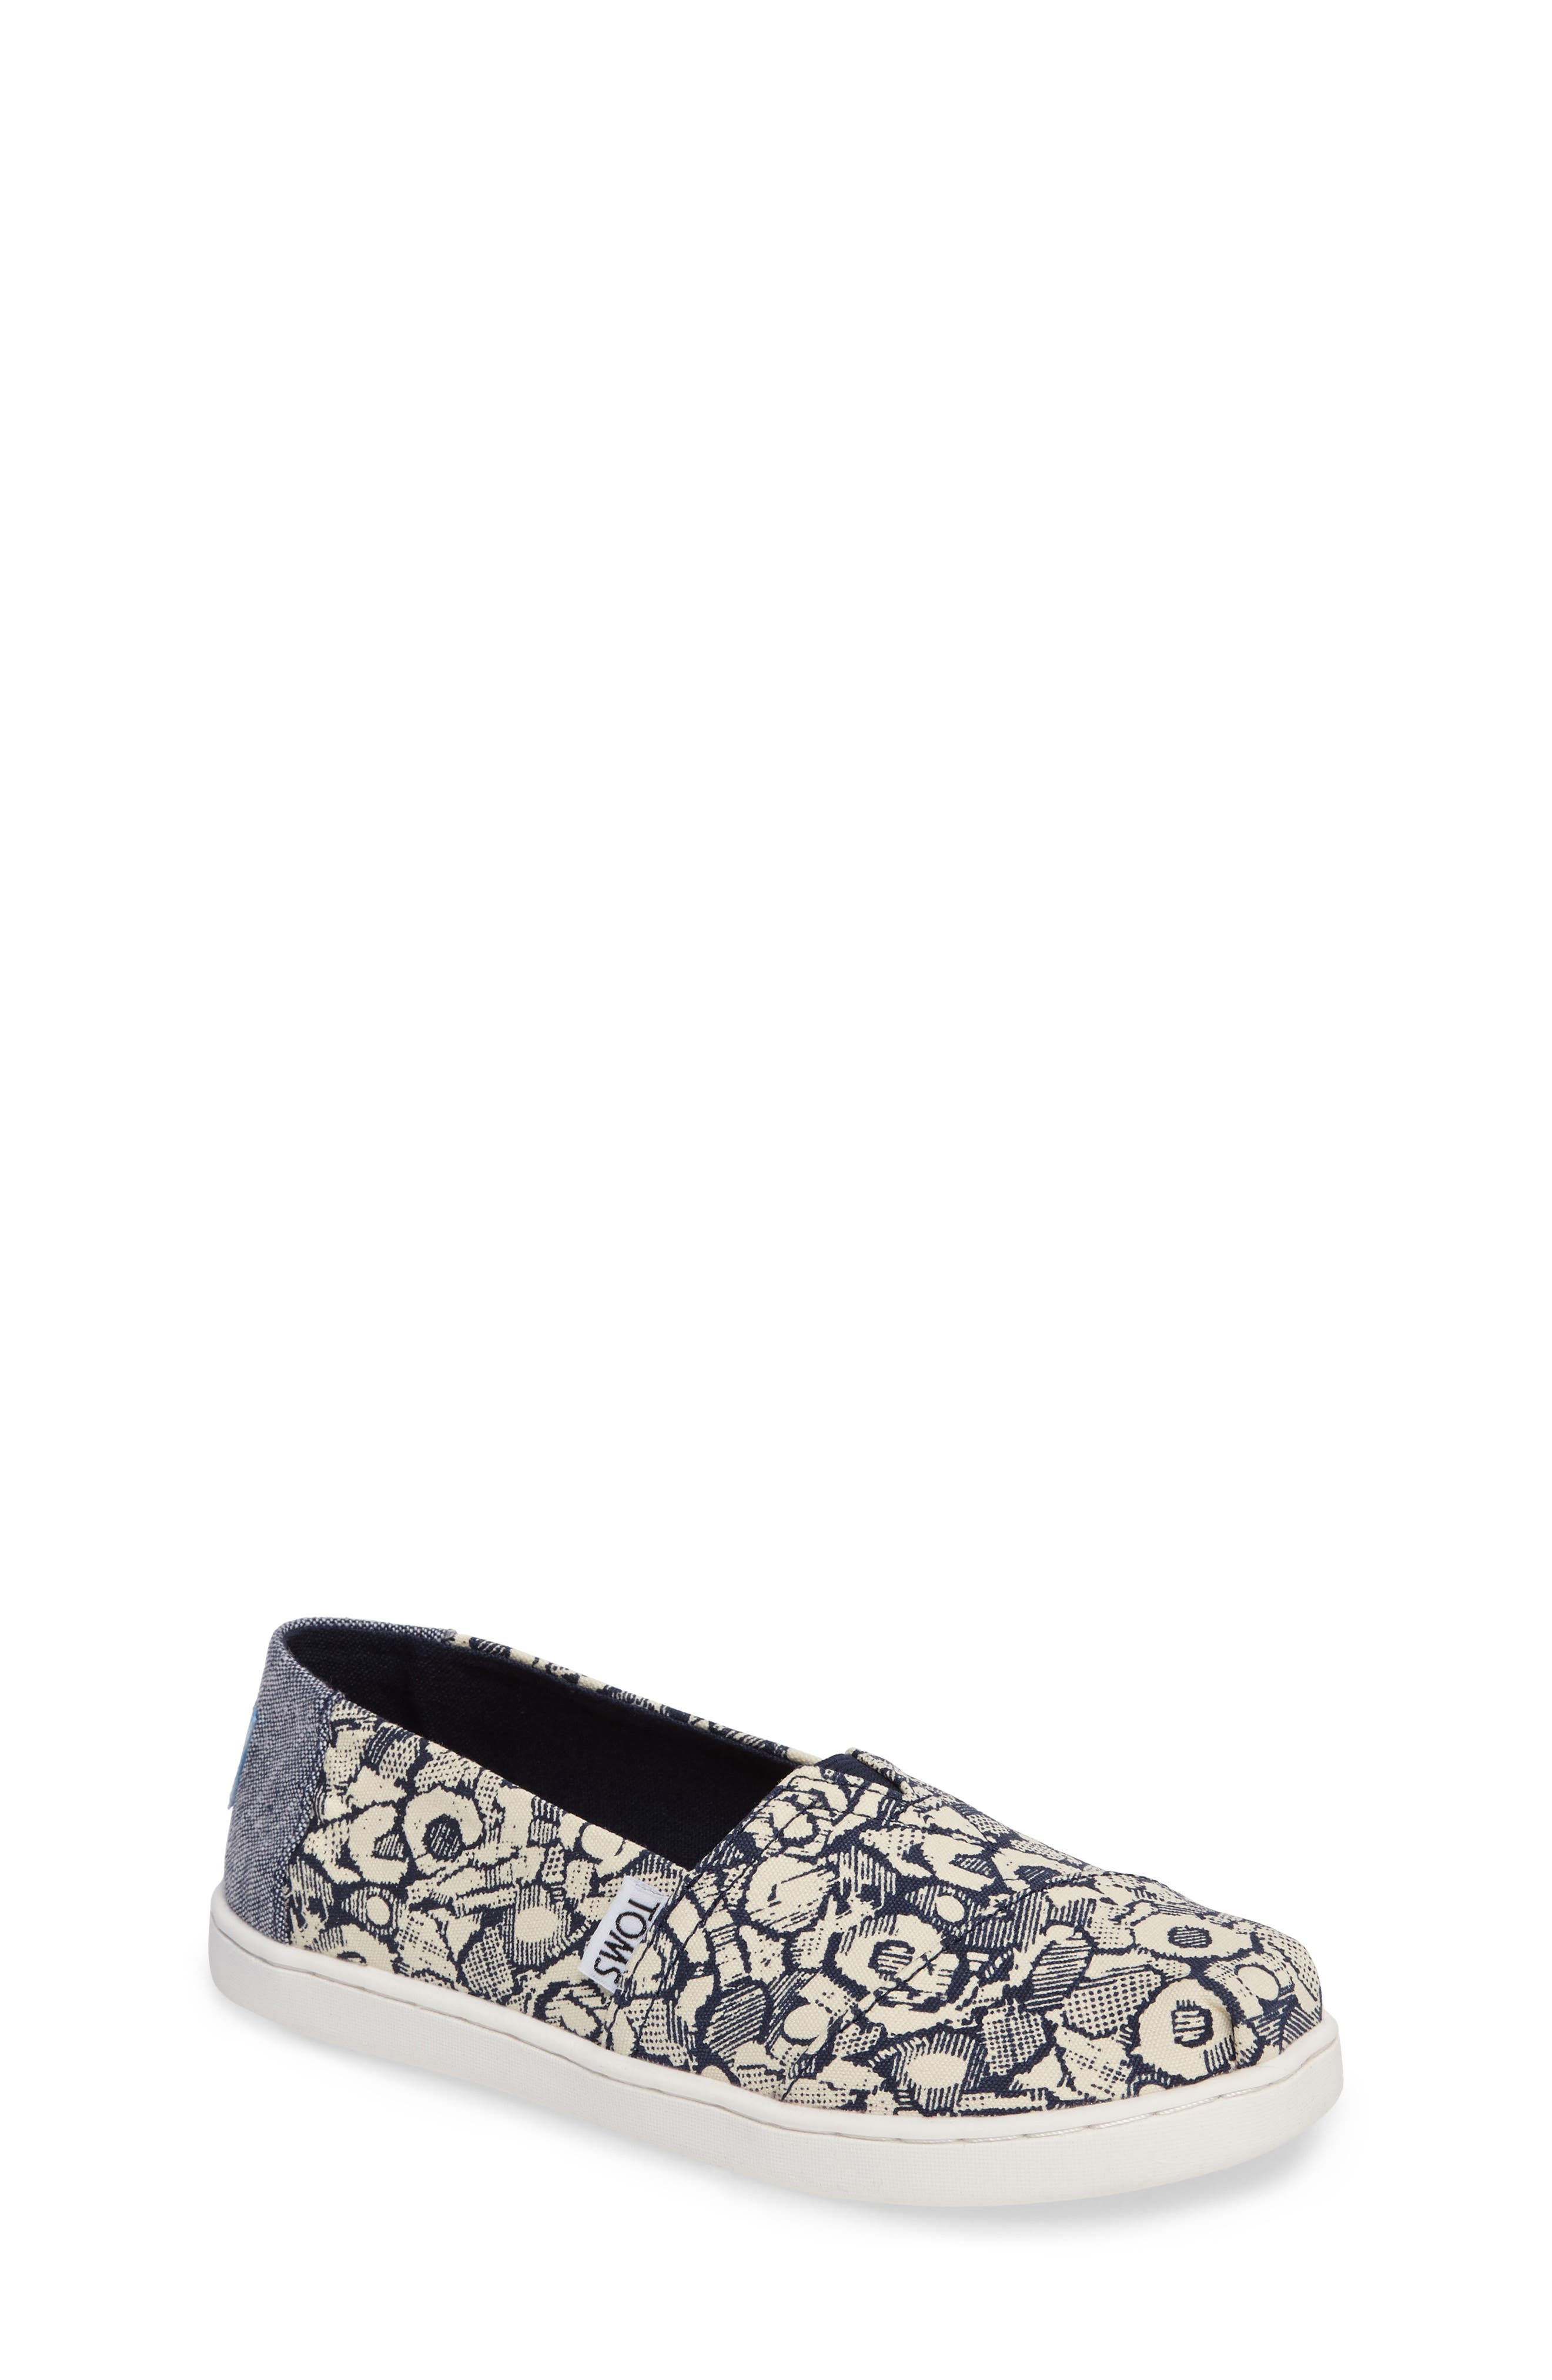 TOMS Classic Floral Camo Slip-On